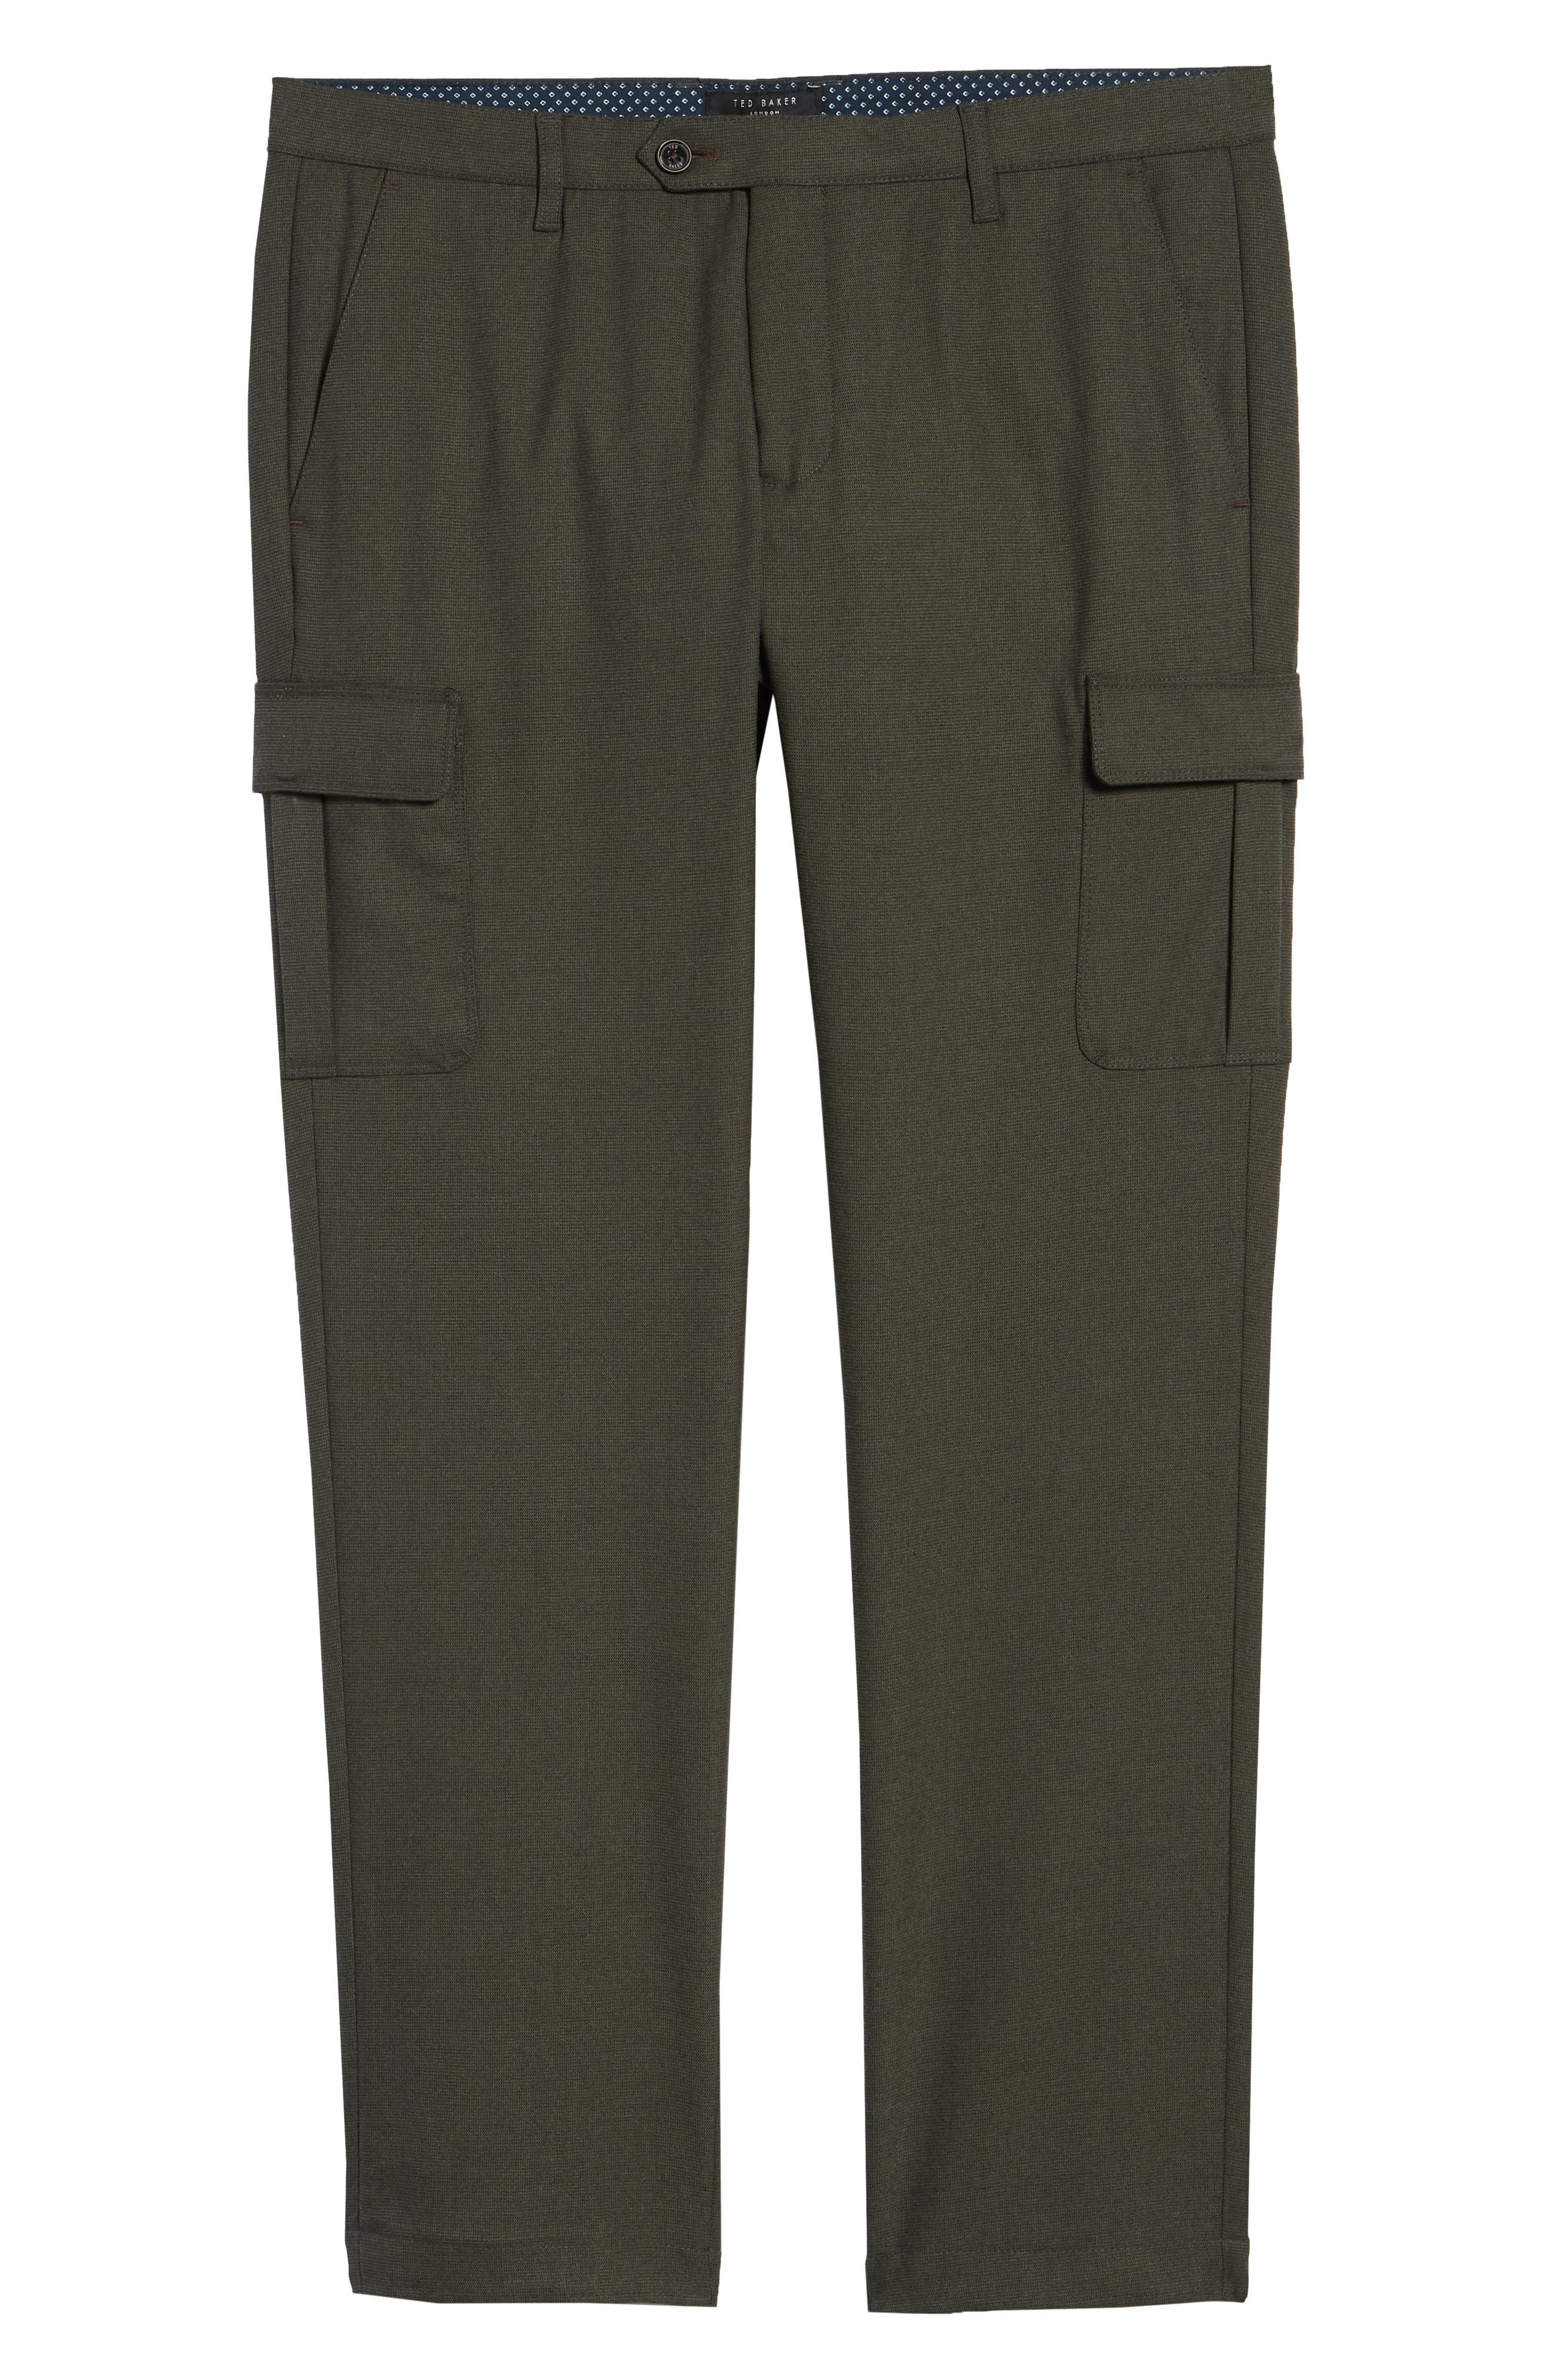 Zakery Slim Fit Utility Cargo Trousers,                             Alternate thumbnail 6, color,                             KHAKI